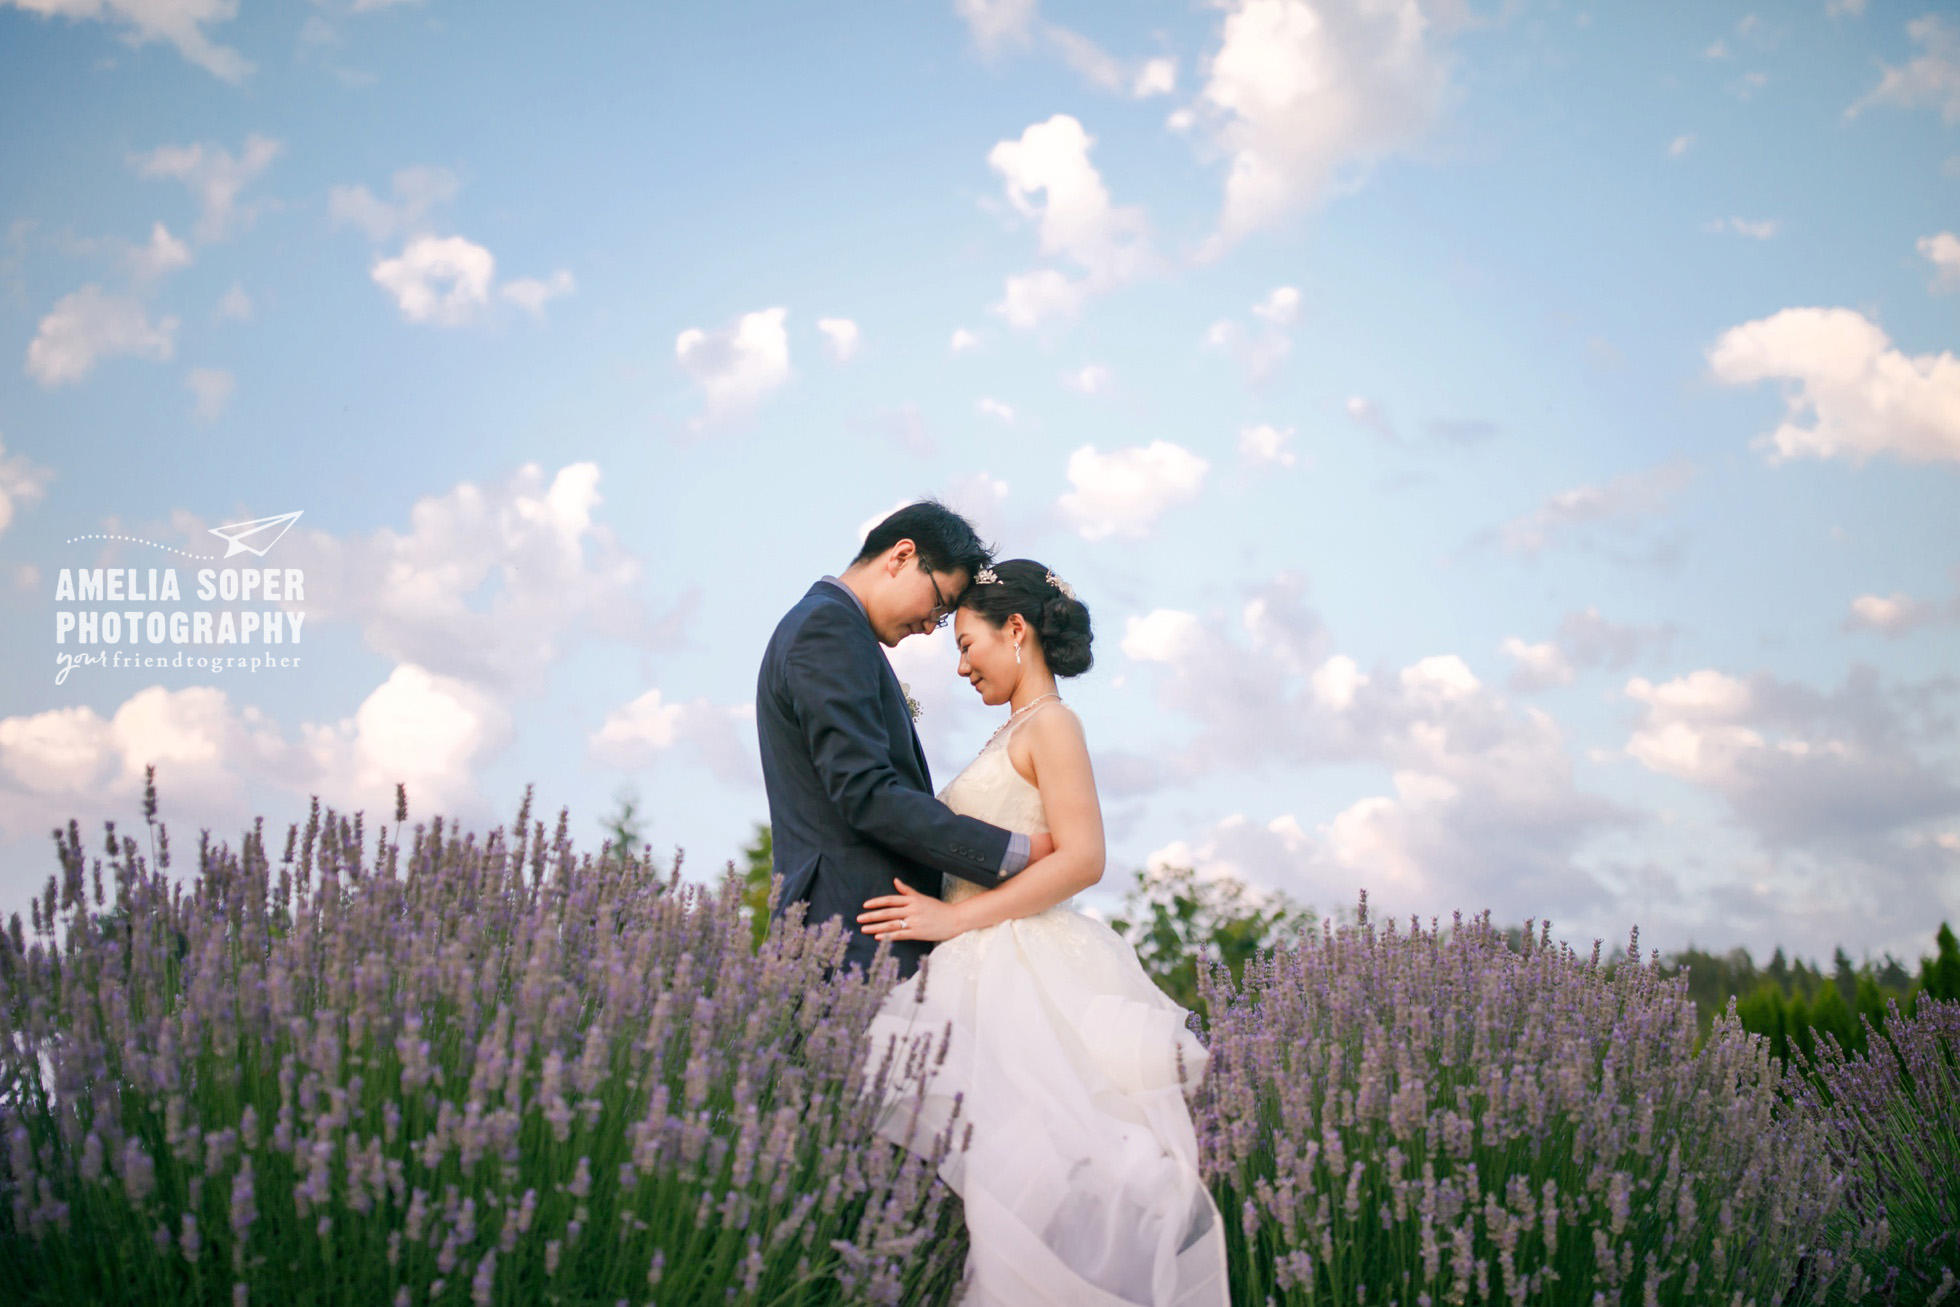 Woodinville Lavender Farm Wedding, Washington State